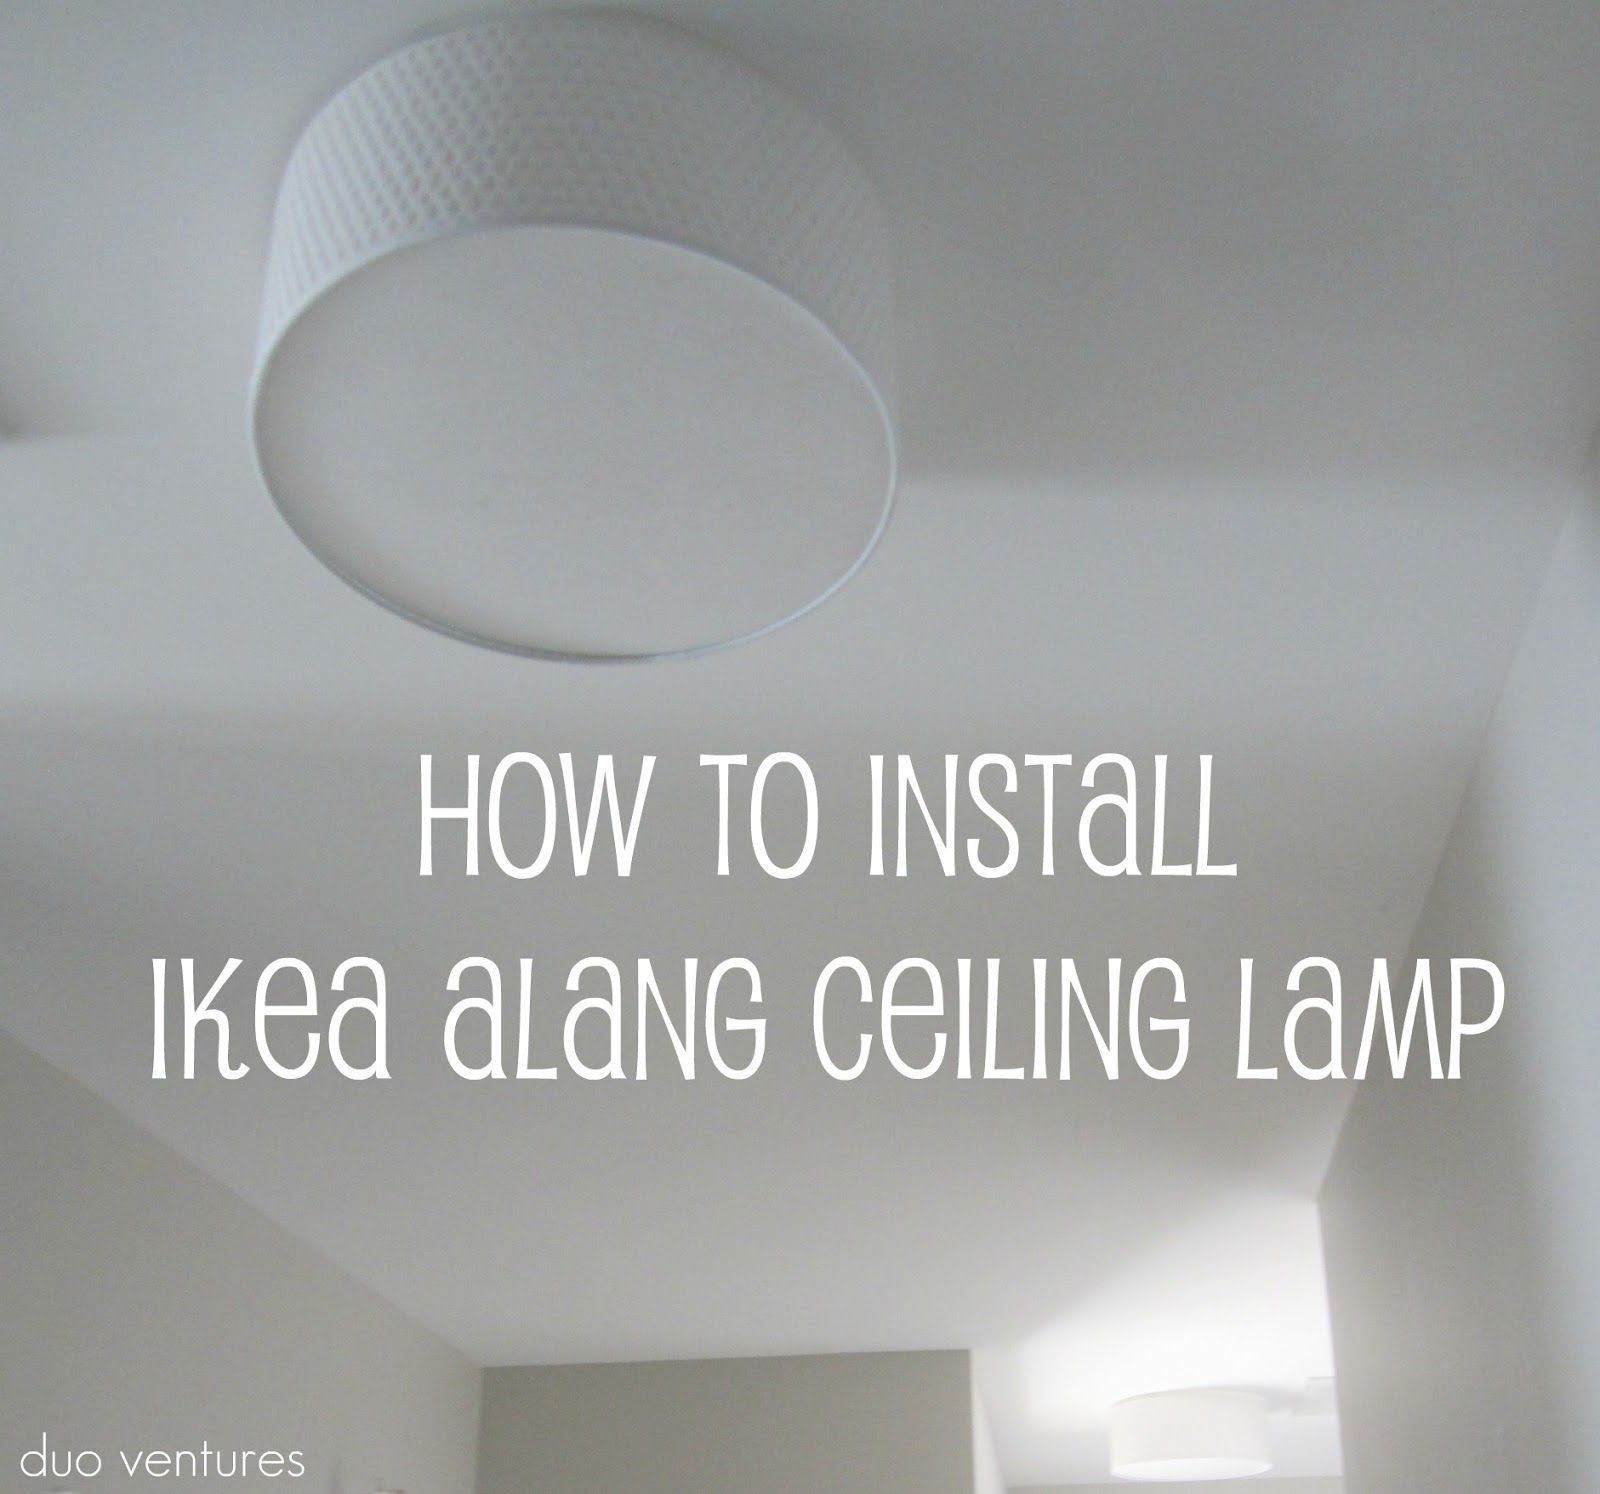 How To Install Ikea Alang Ceiling Lamp Ceiling Lamp Ikea Ceiling Light Installation